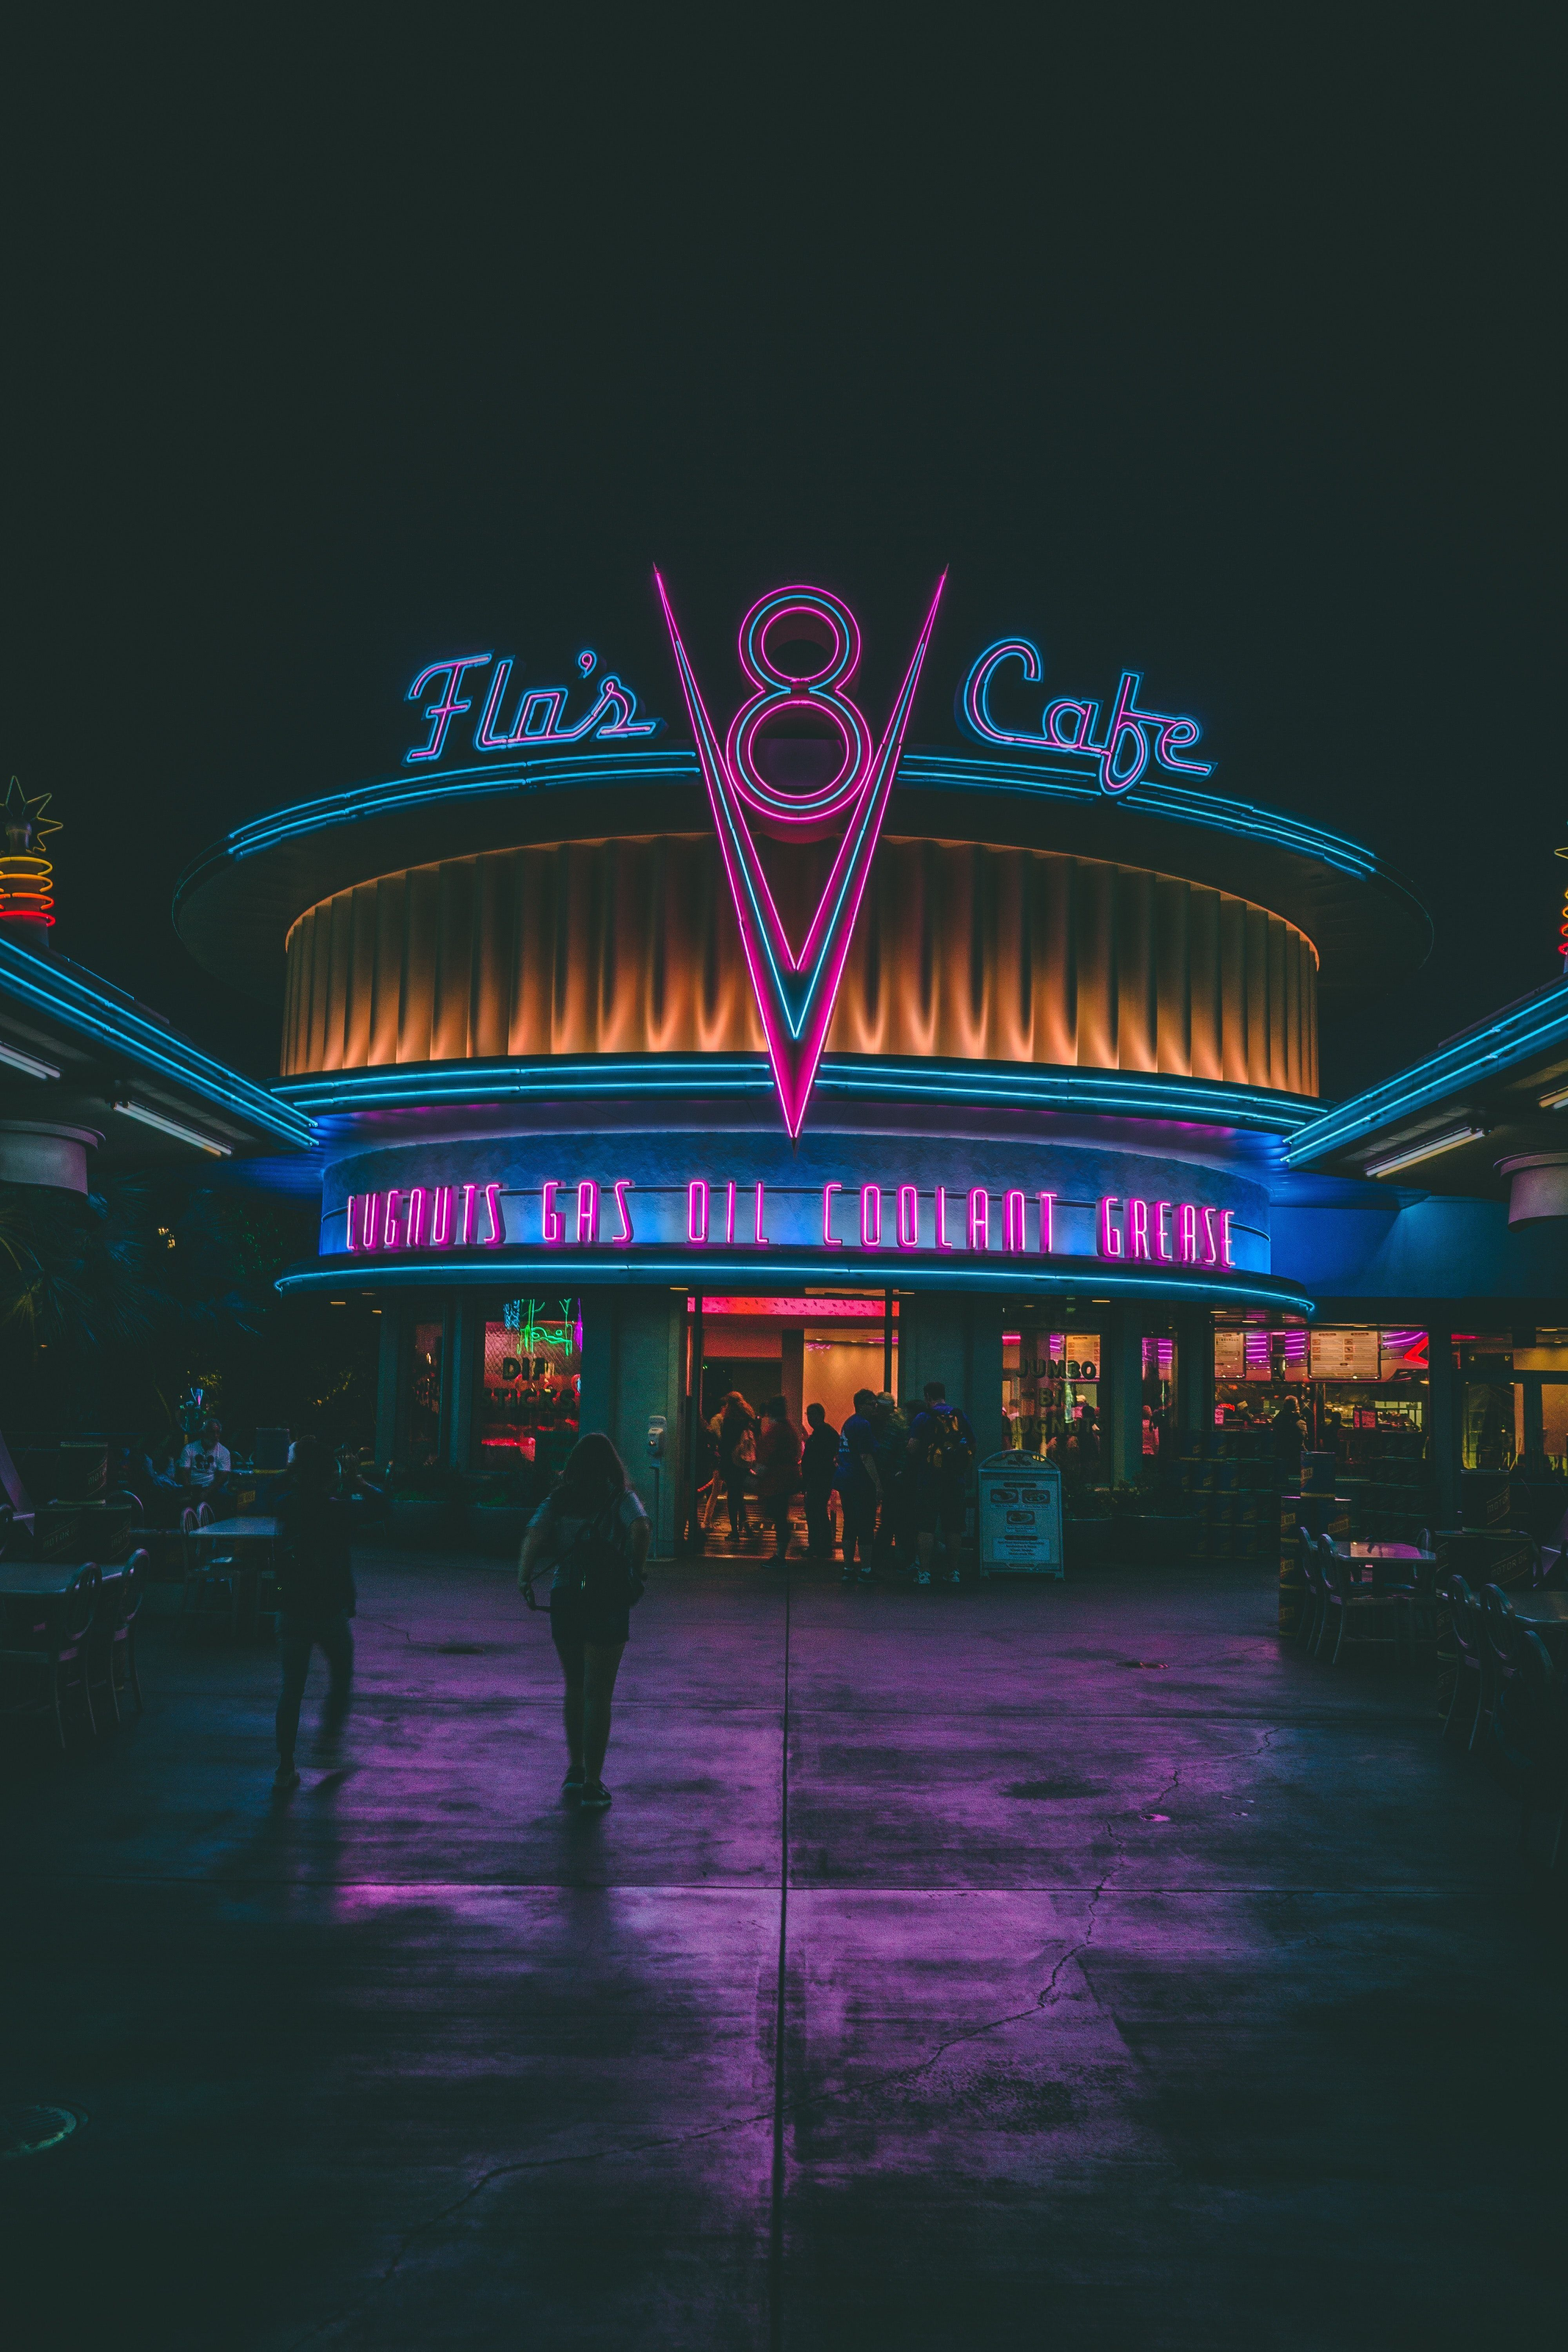 Aesthetic Neon iPhone Wallpapers - Wallpaper Cave